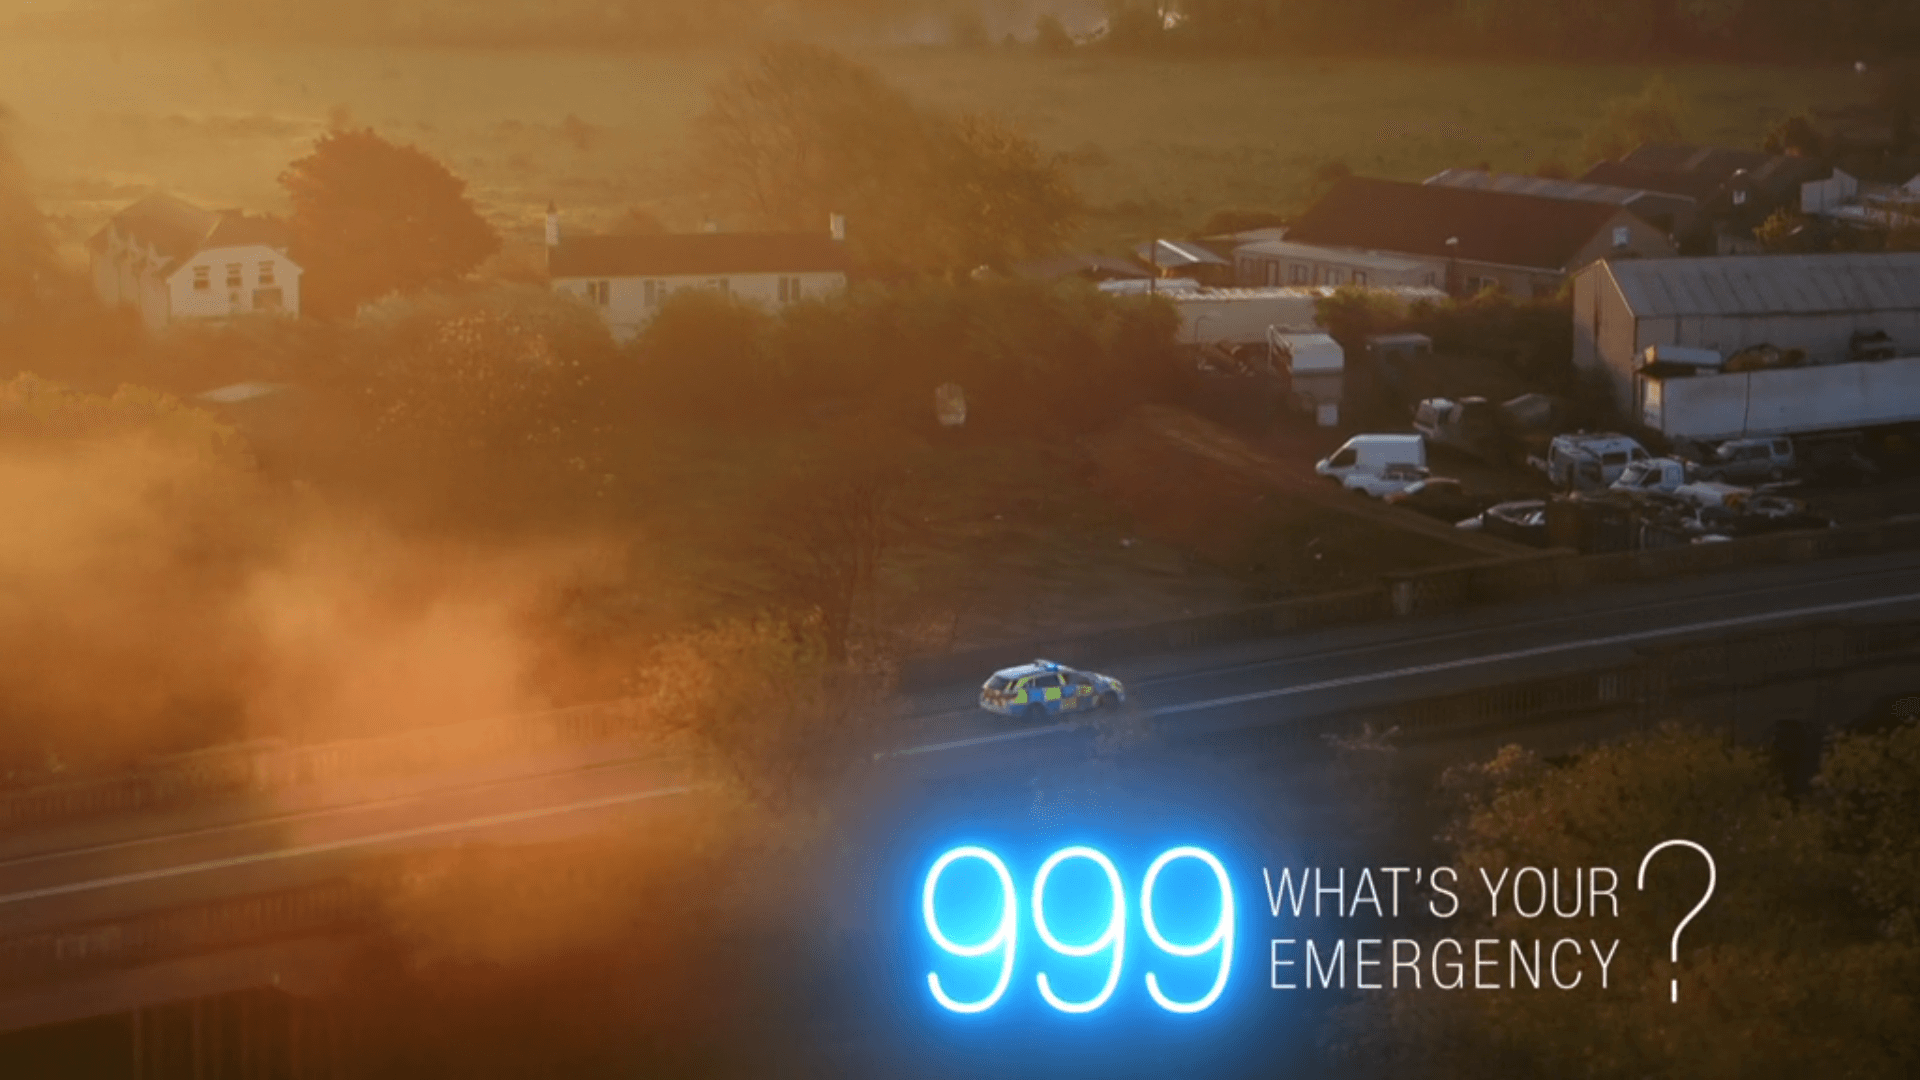 999 What's Your Emergency